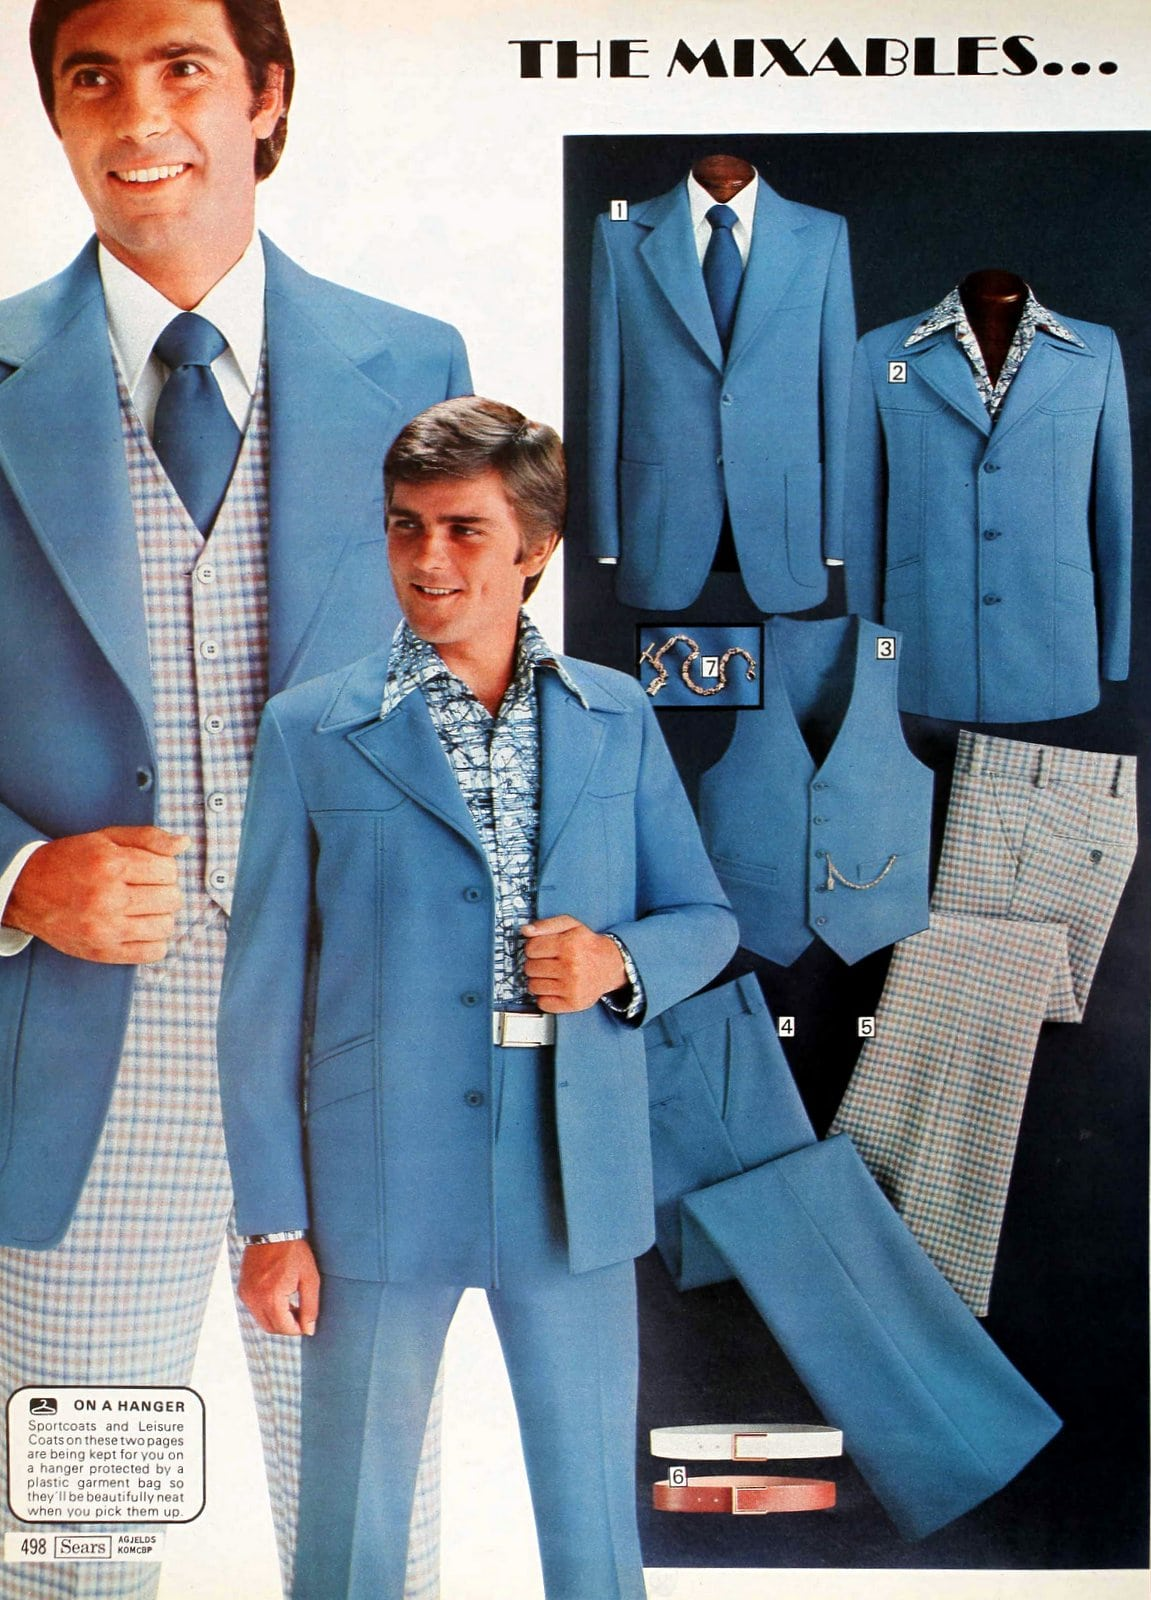 Sears suits and menswear from the 1970s (4)